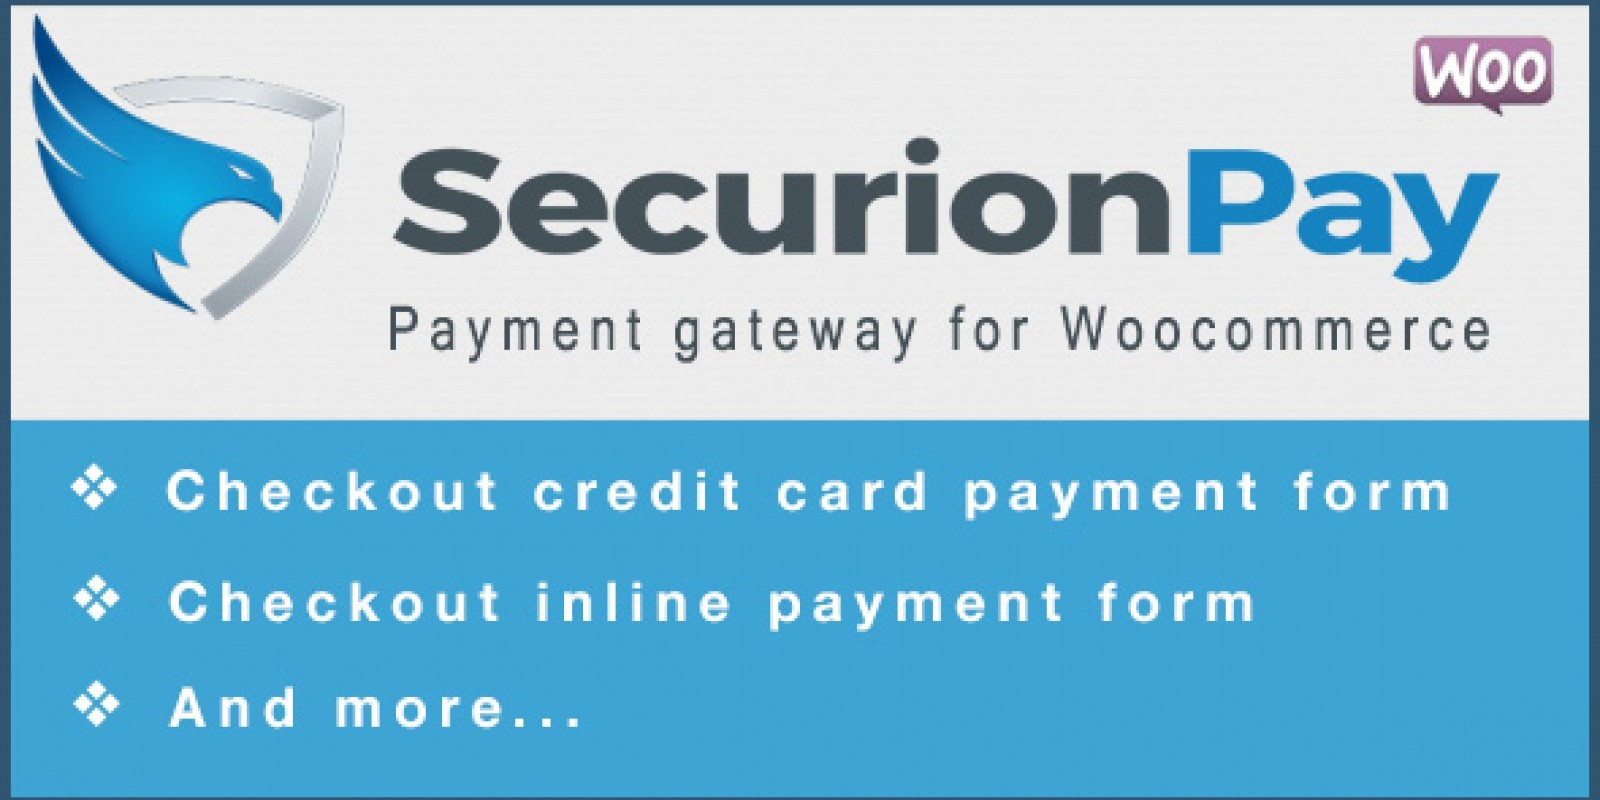 SecurionPay Payment Gateway for WooCommerce